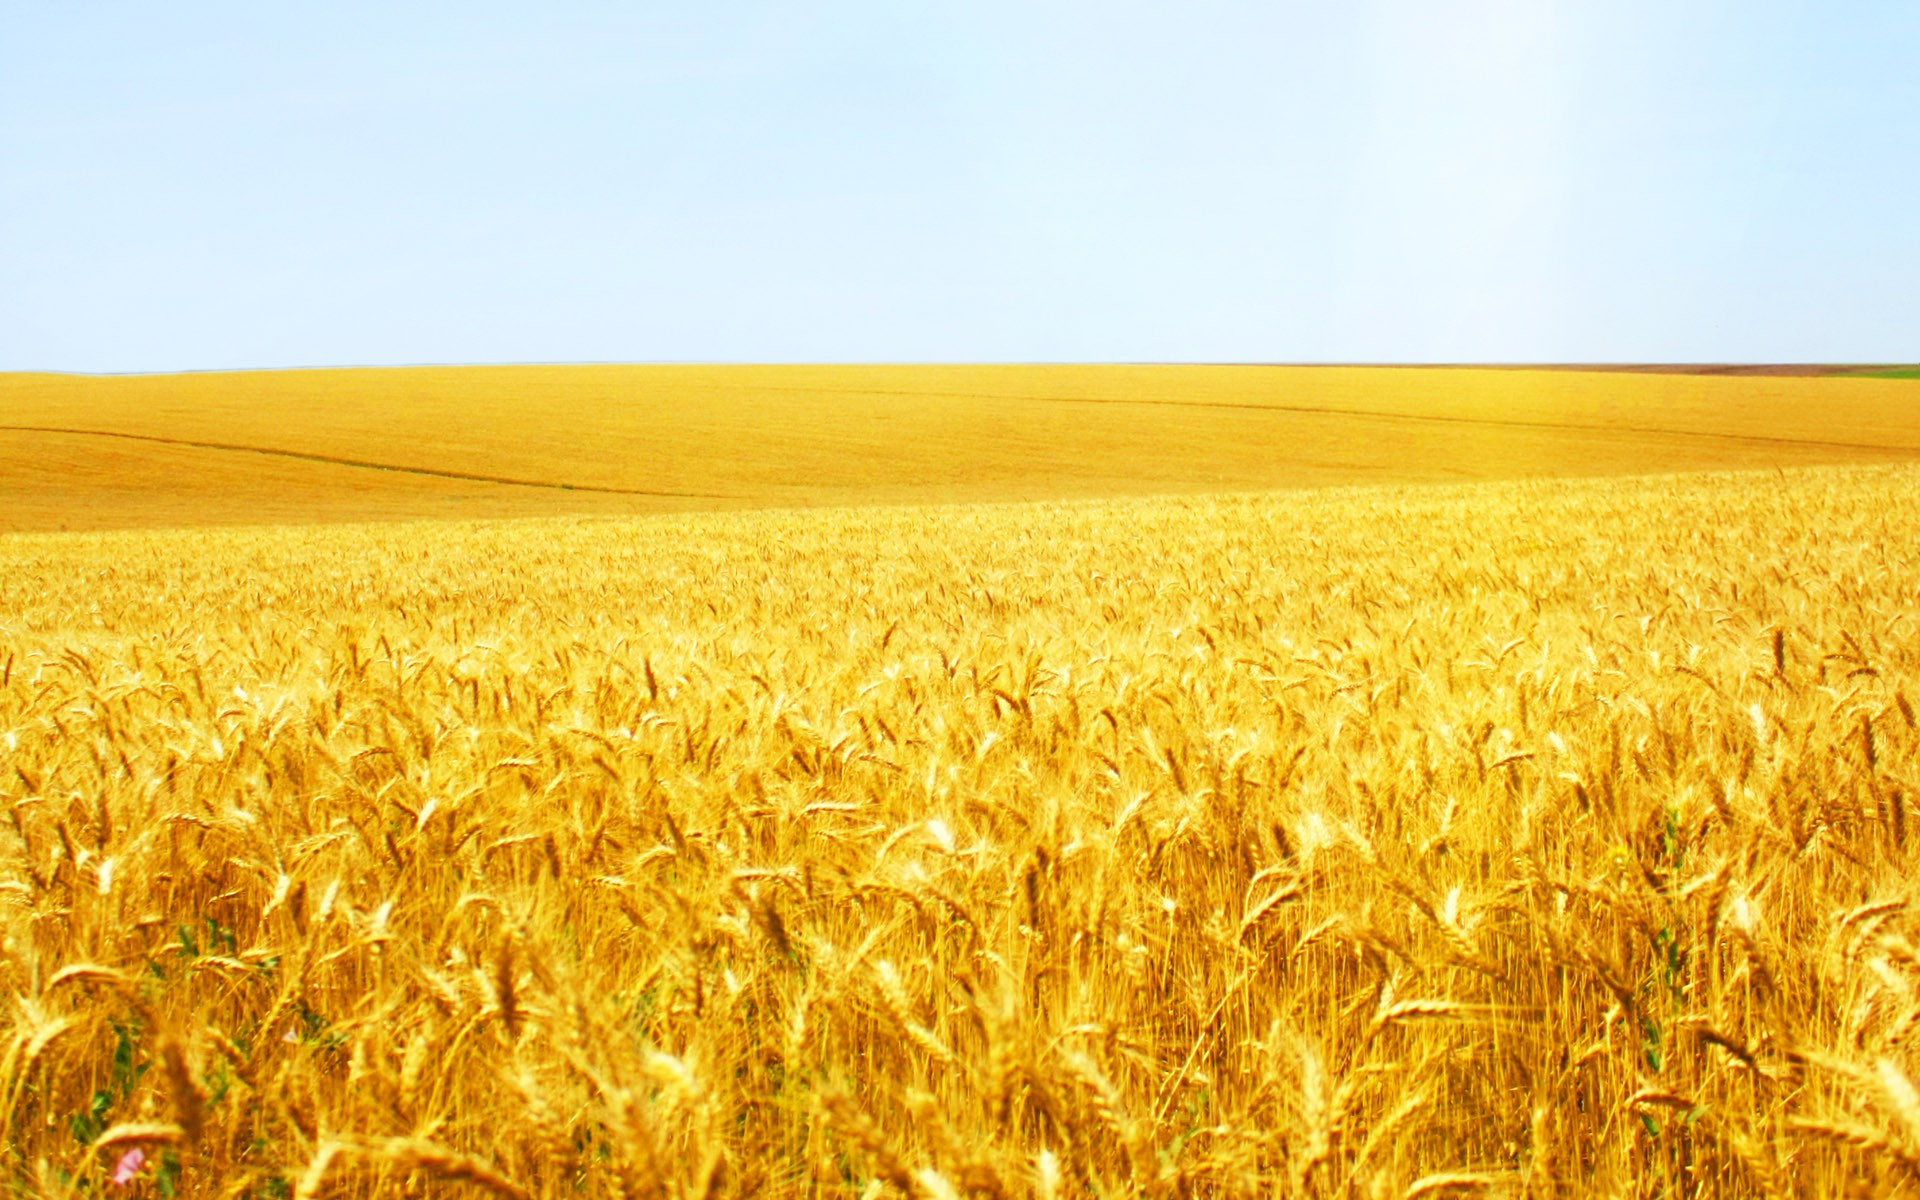 Wheat field wallpaper